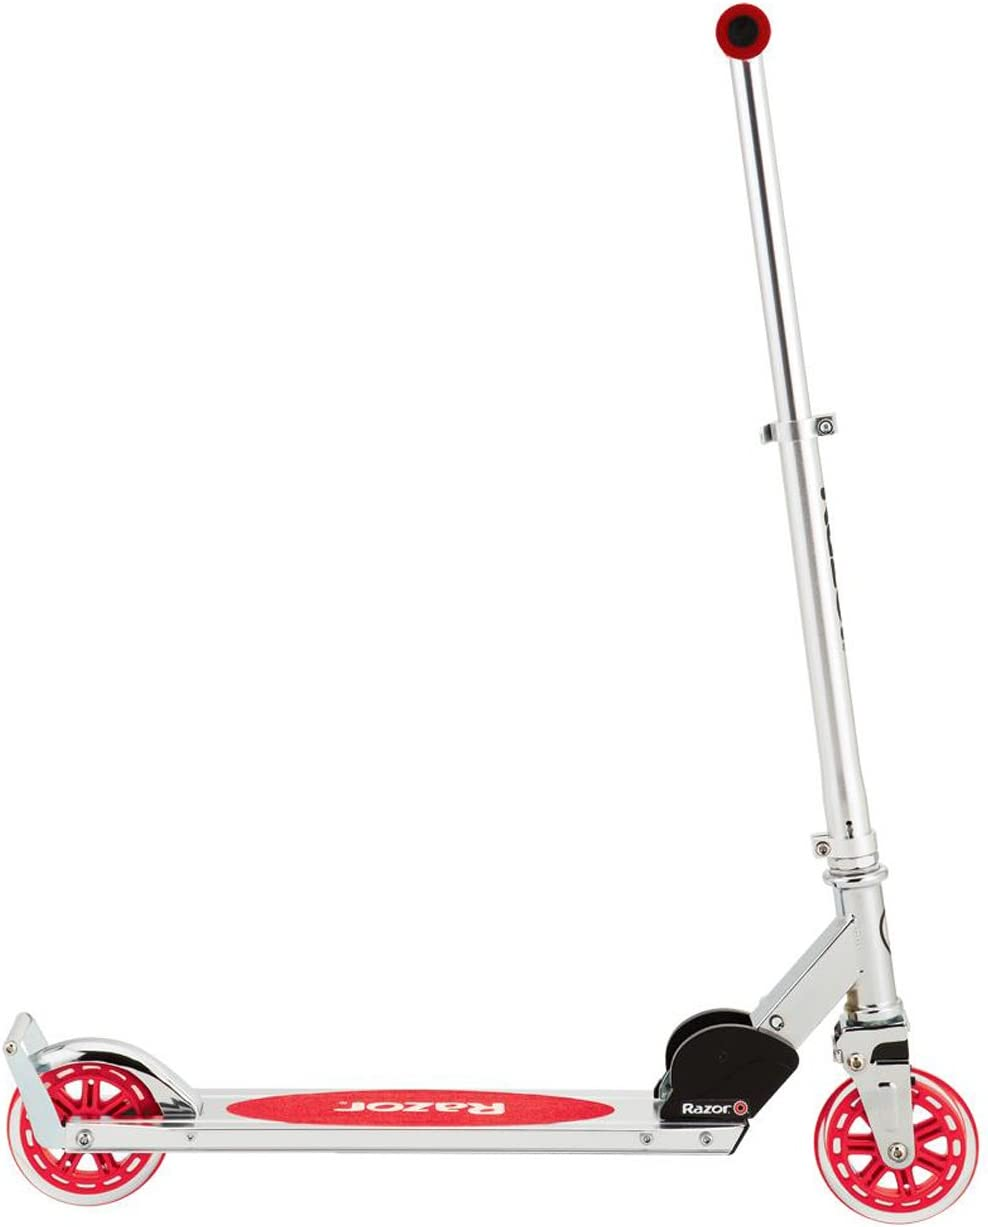 Razor A3 Kick Scooter - 3